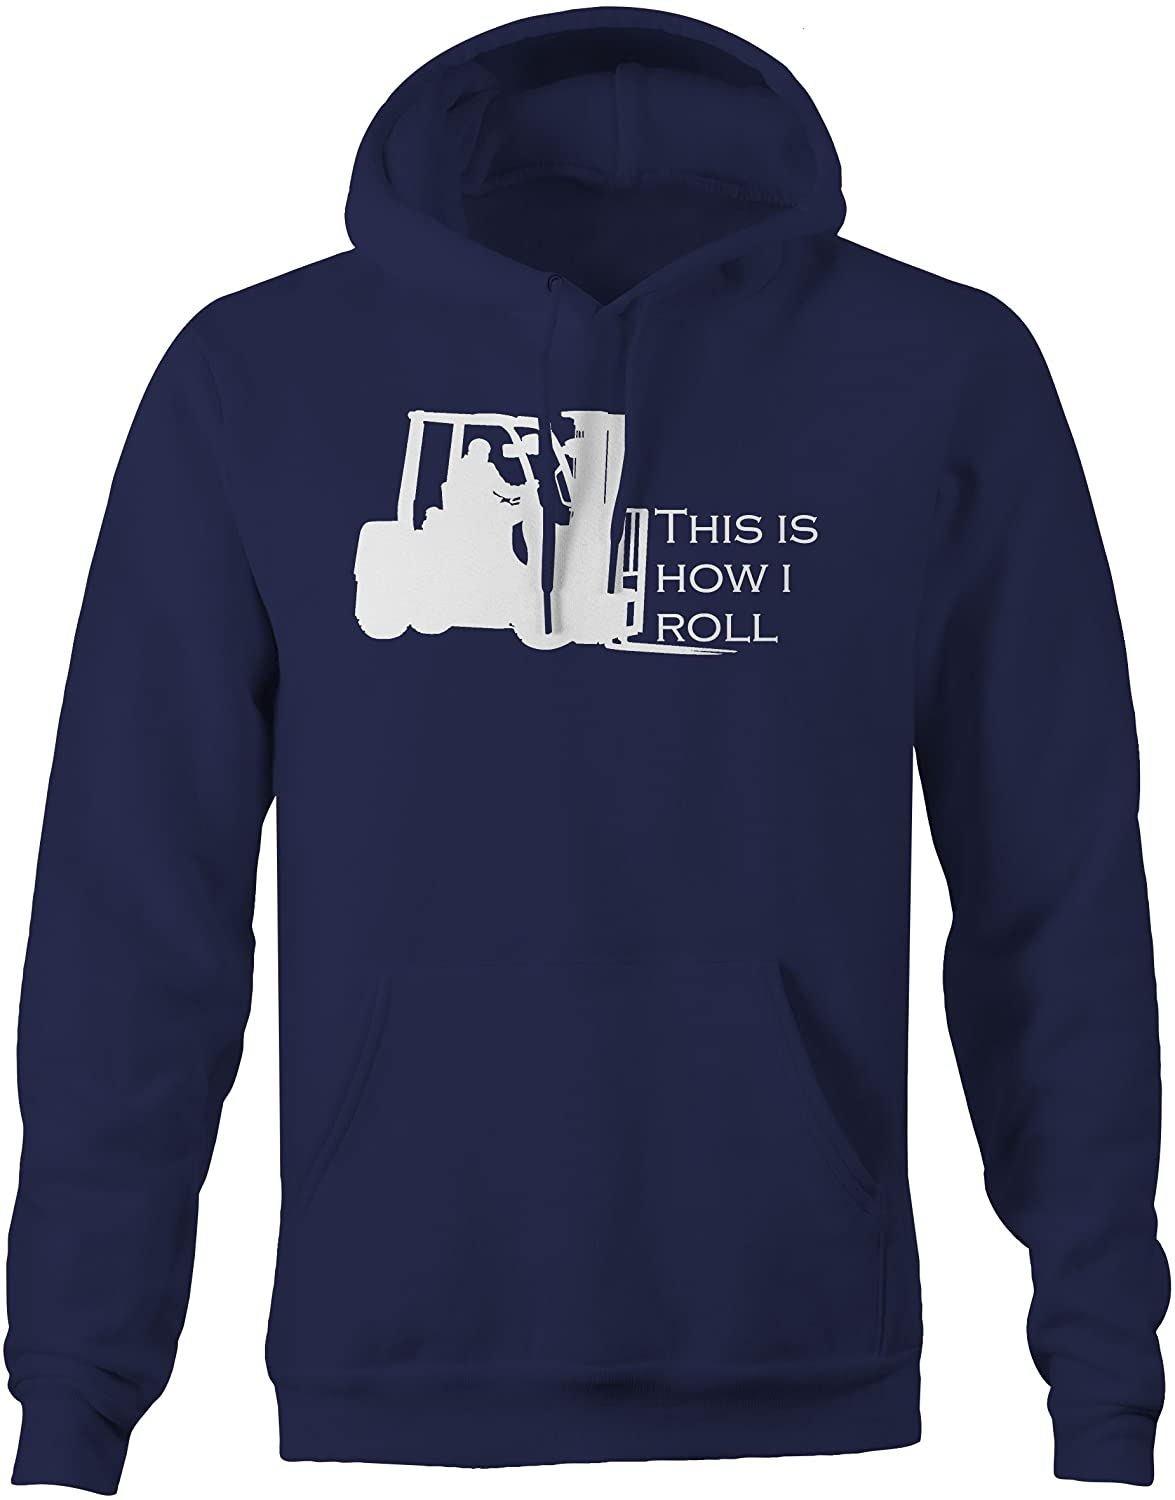 OS Gear This is How I Roll Forklift Forktruck Warehouse Sweatshirt